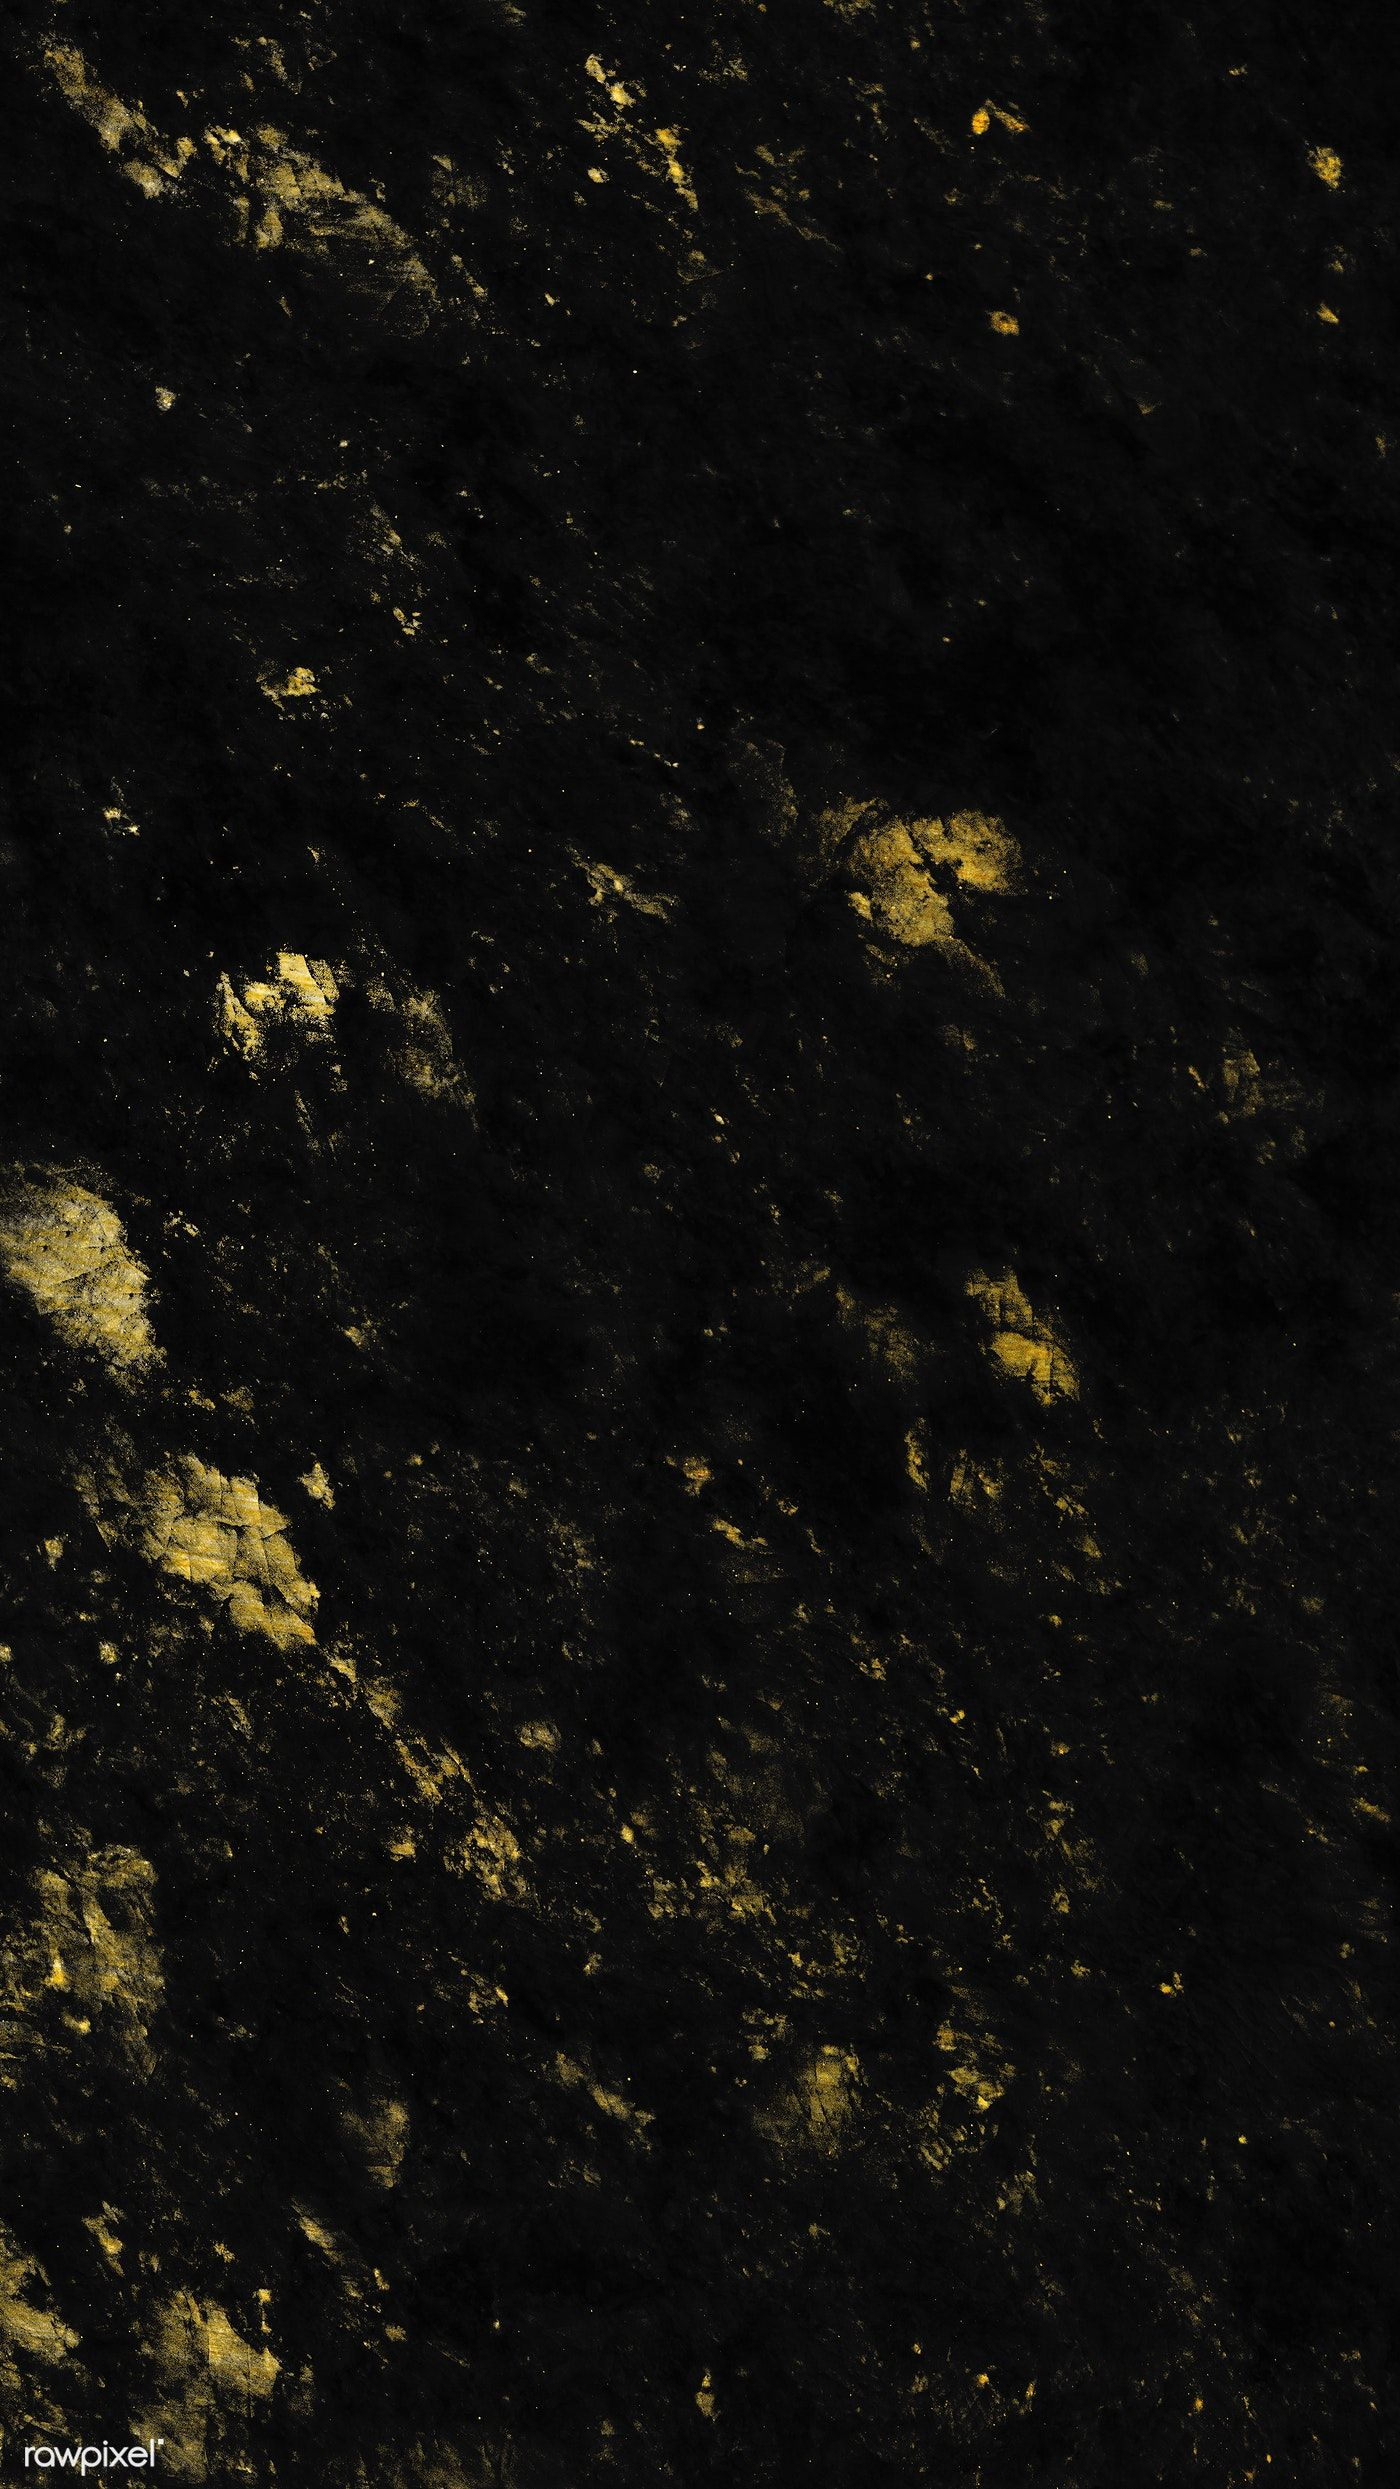 Download Premium Illustration Of Black And Golden Colored Mobile Phone Golden Wallpaper Golden Color Beautiful Wallpapers Backgrounds